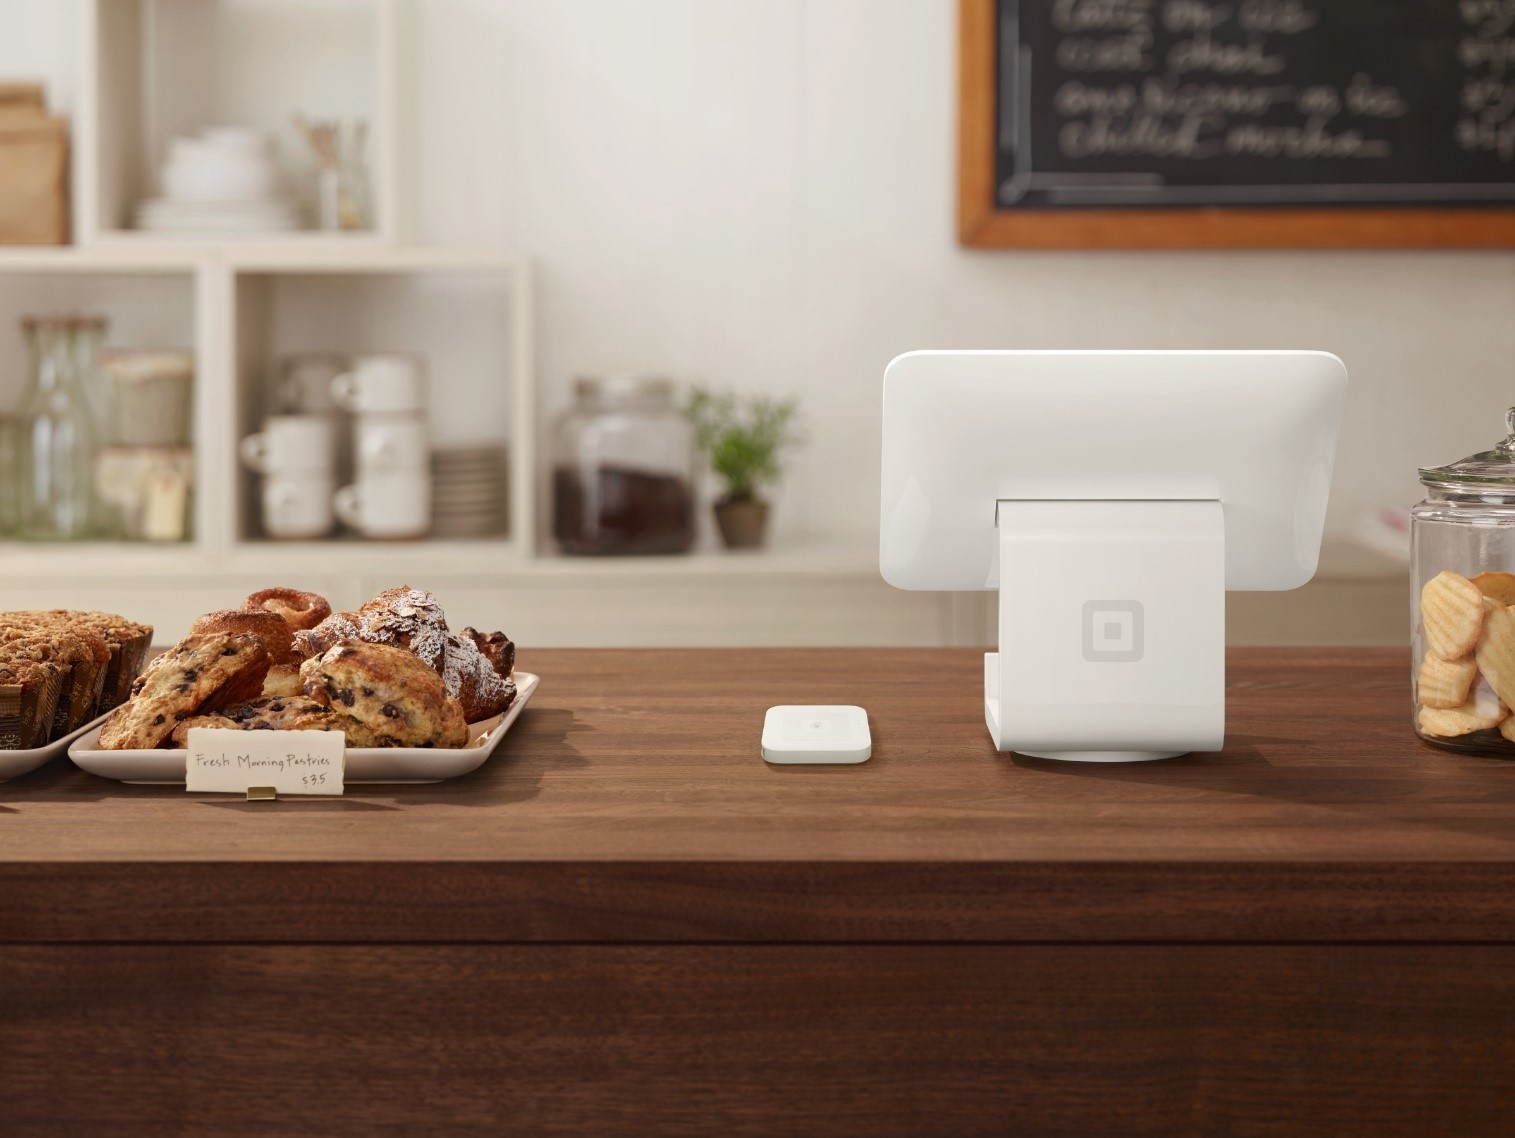 The Success Story Of Square How They Had Reimagined Payments-Fig 5